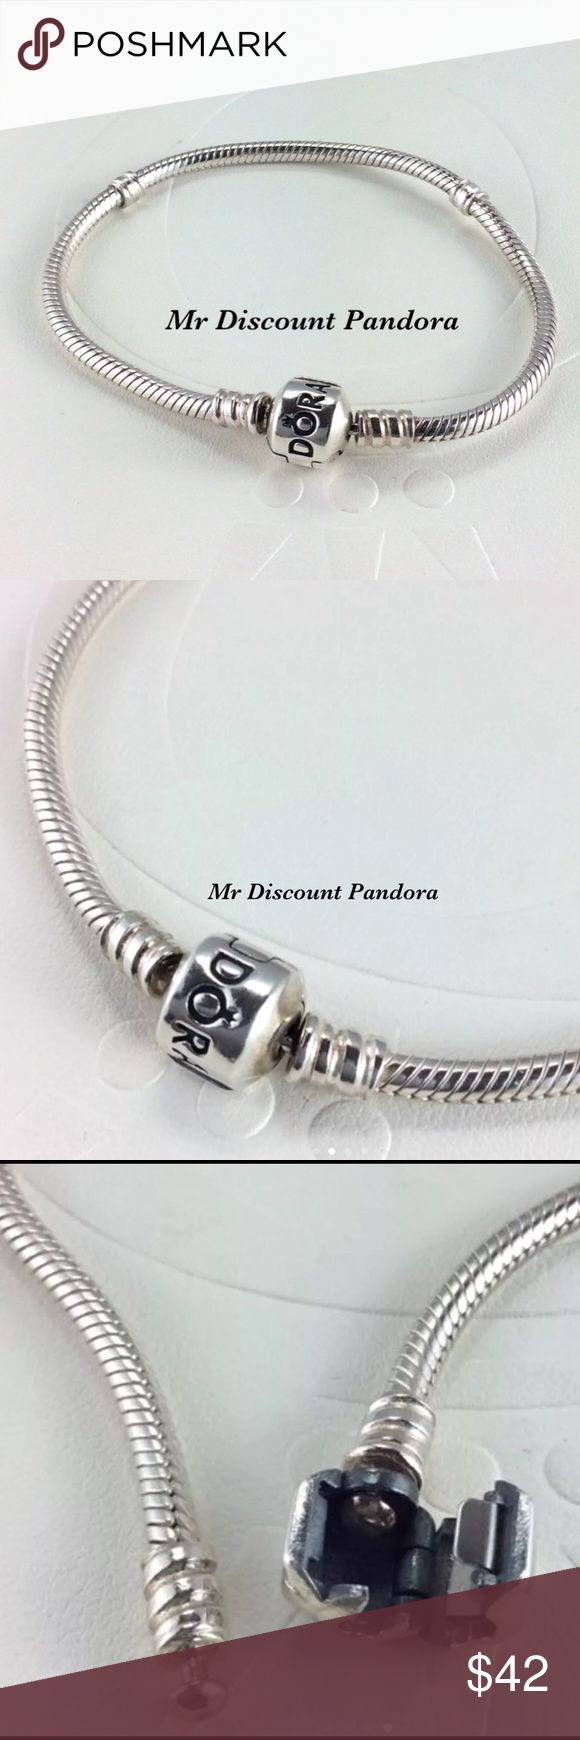 """7.1"""" Pandora Iconic Silver Bracelet This sterling silver charm bracelet is the most popular PANDORA bracelet. Its design features a barrel charm clasp and our innovative threading system, which makes it easy to screw PANDORA charms onto your bracelet and keep them securely where you want them. This is the perfect style to start or add to your charm collection.  Condition: Gently used (Not stiff)  Retail new $70.00 including taxes  Add a Pandora box for $4 more  Bundle/Offer for discount…"""